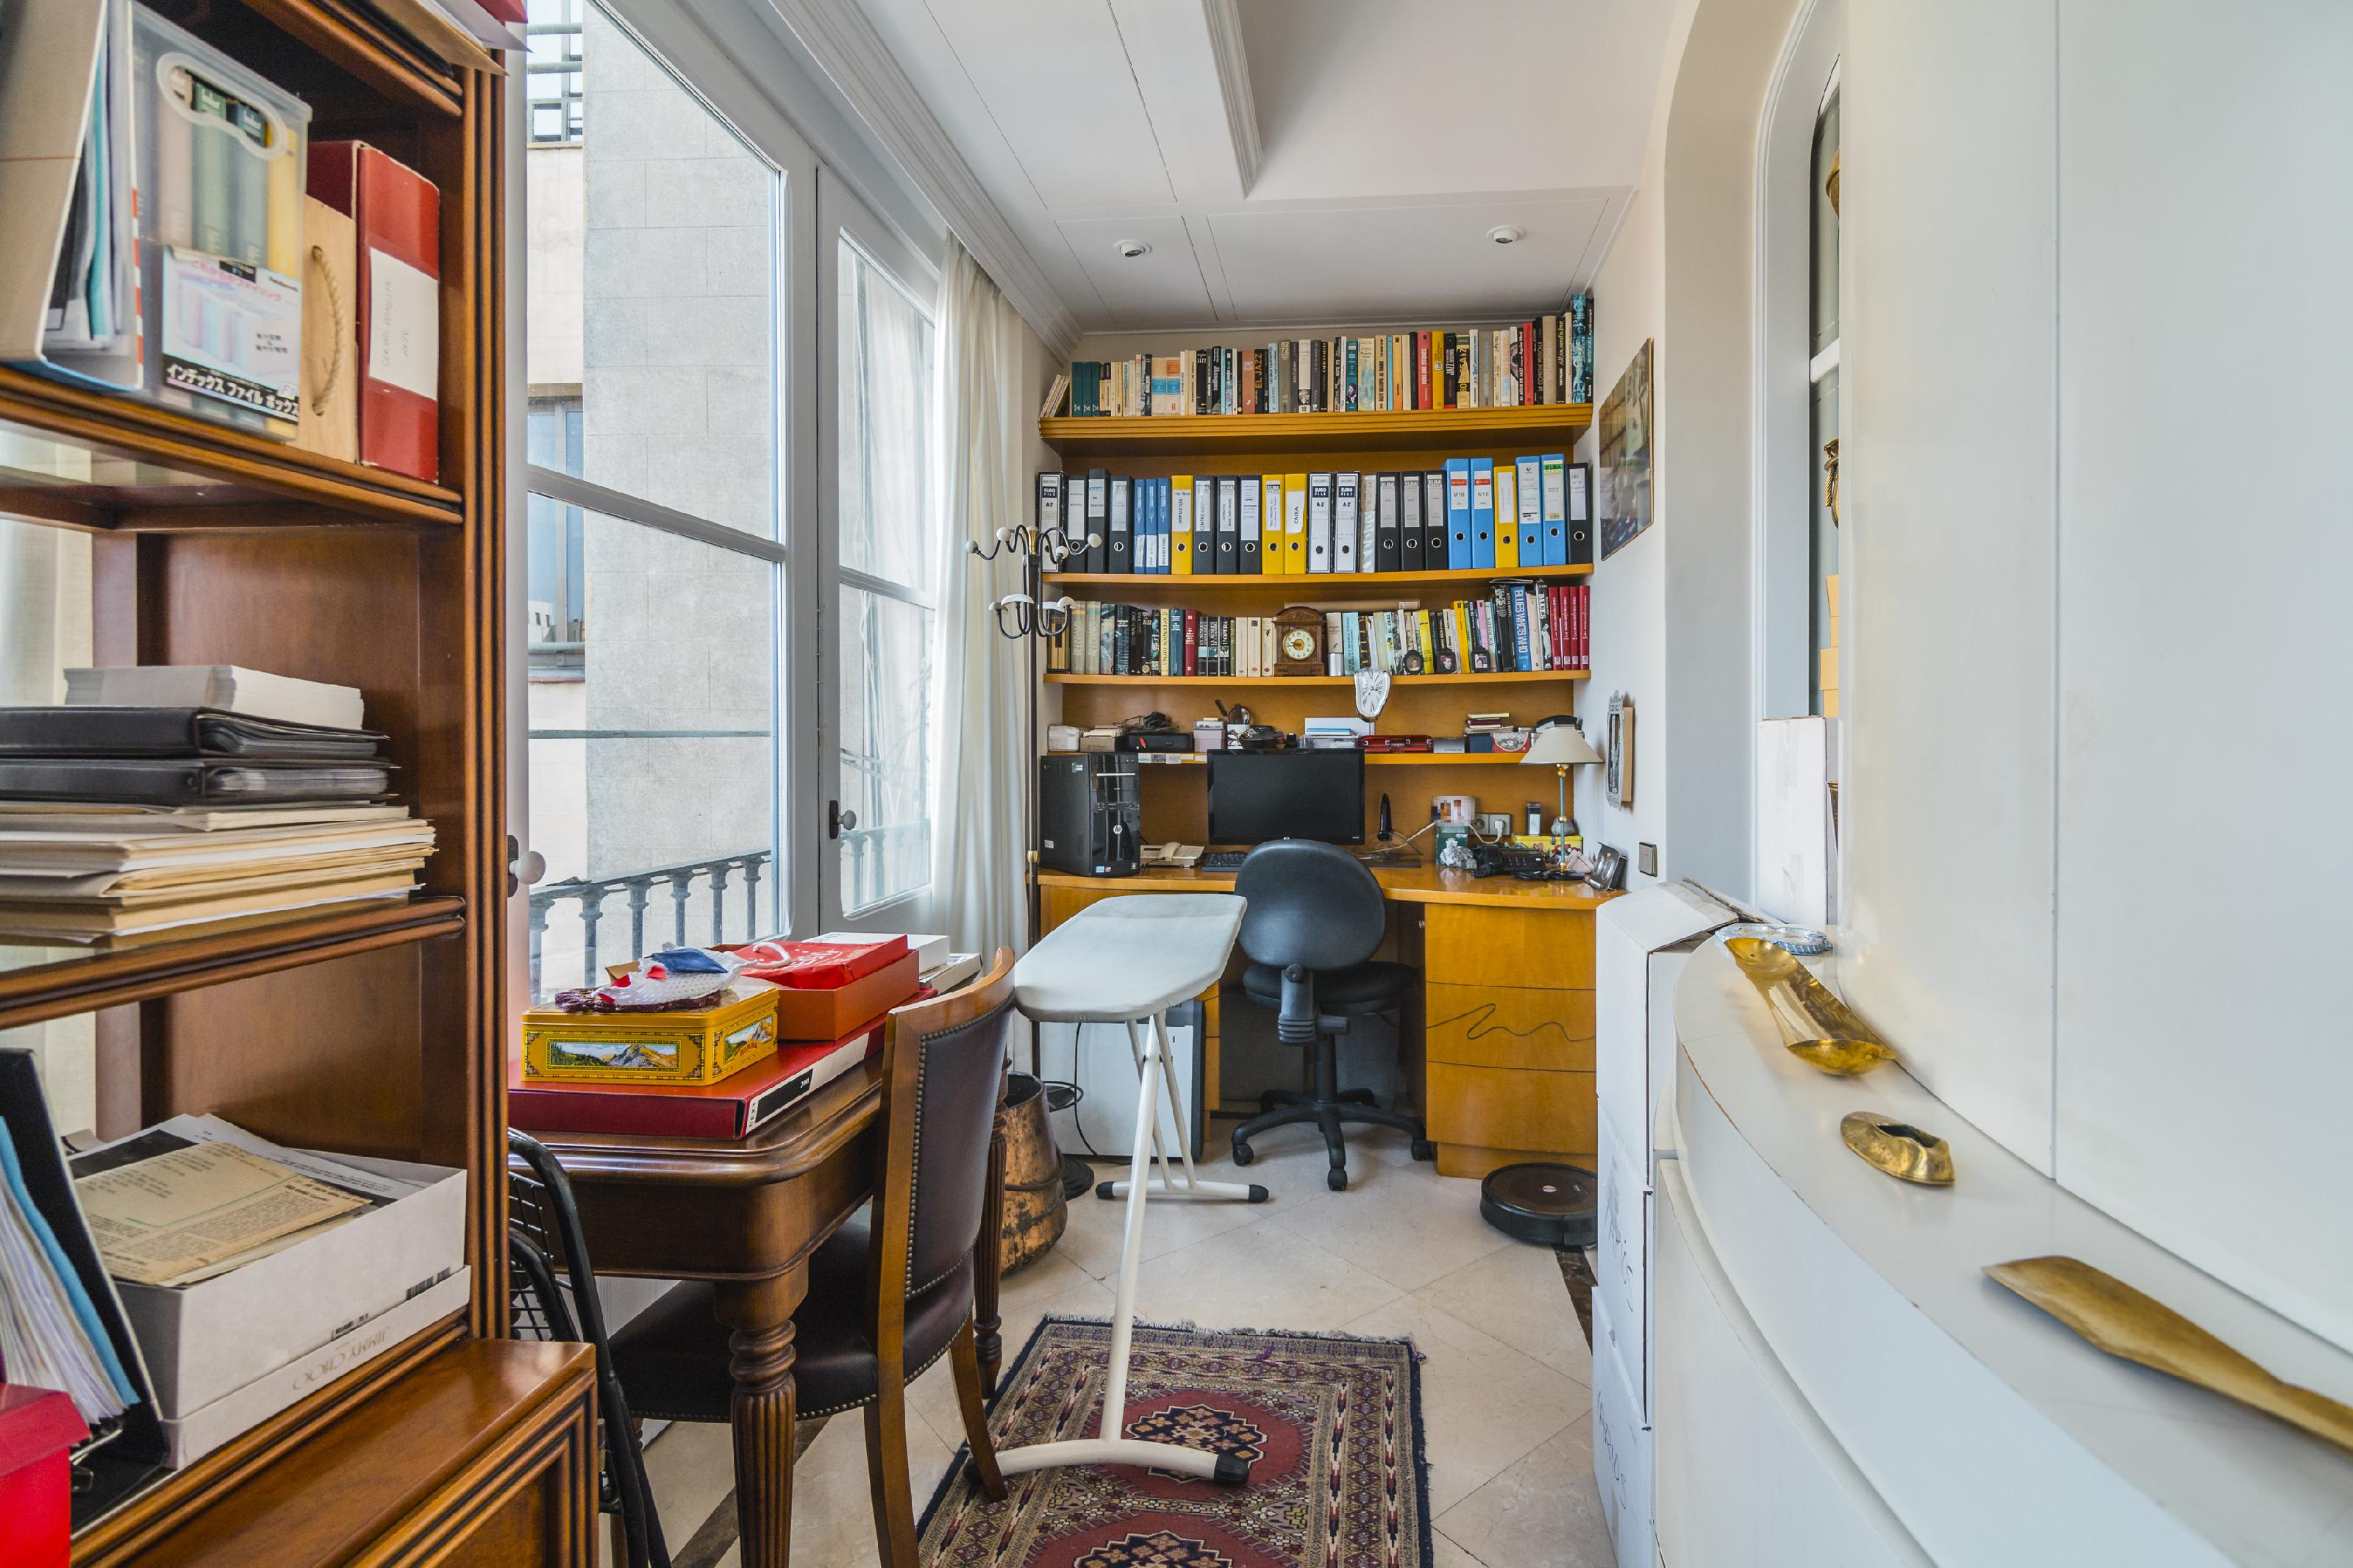 87800 Apartment for sale in Eixample, Dreta Eixample 30